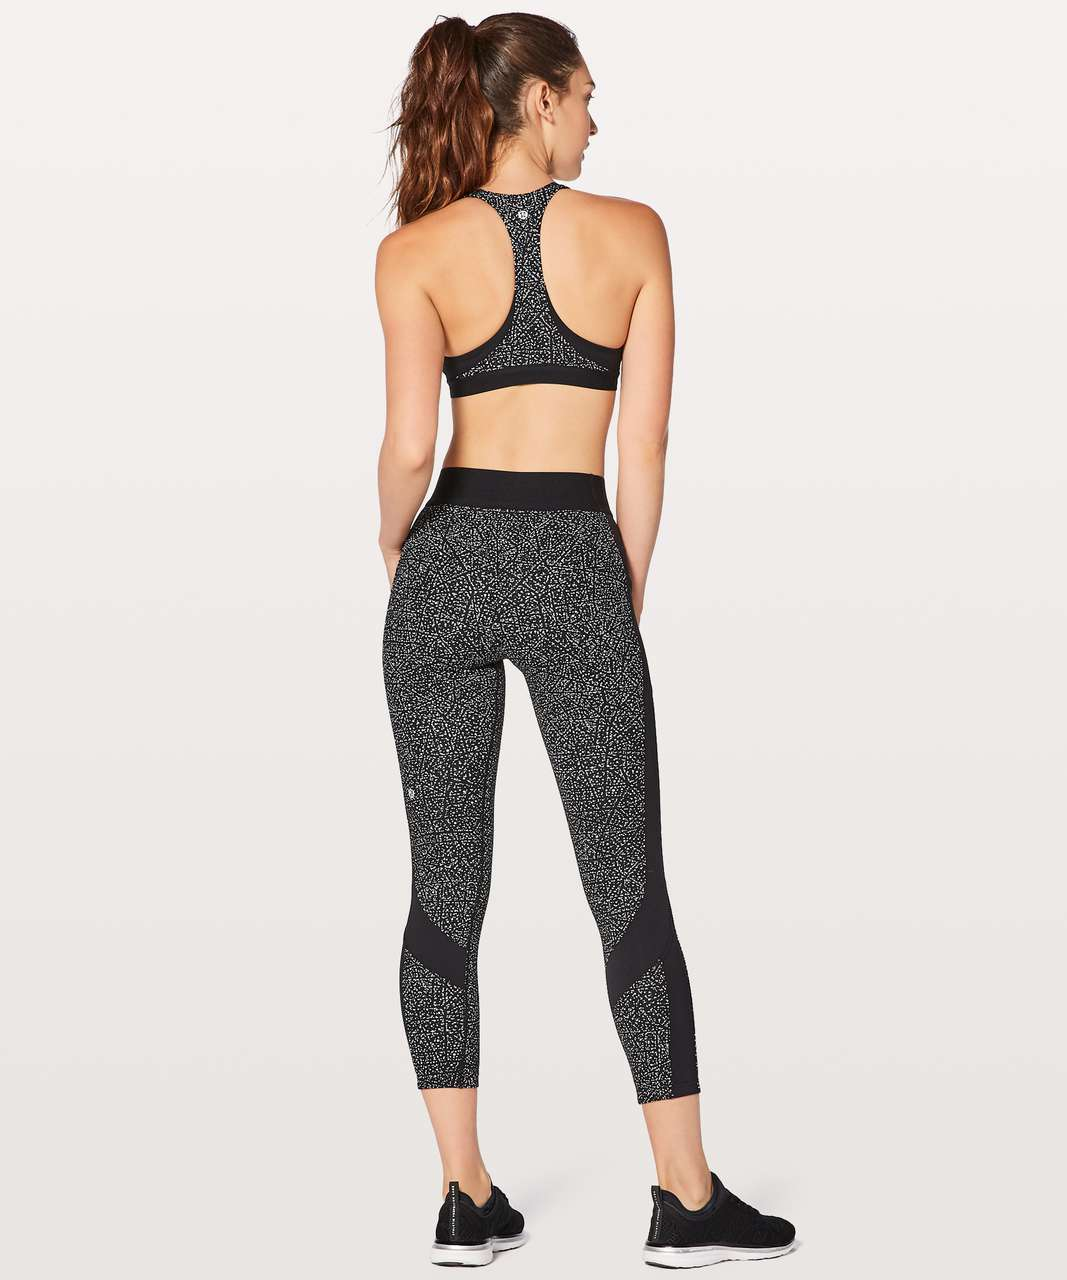 Lululemon Box It Out Tight - Night View White Black / Black